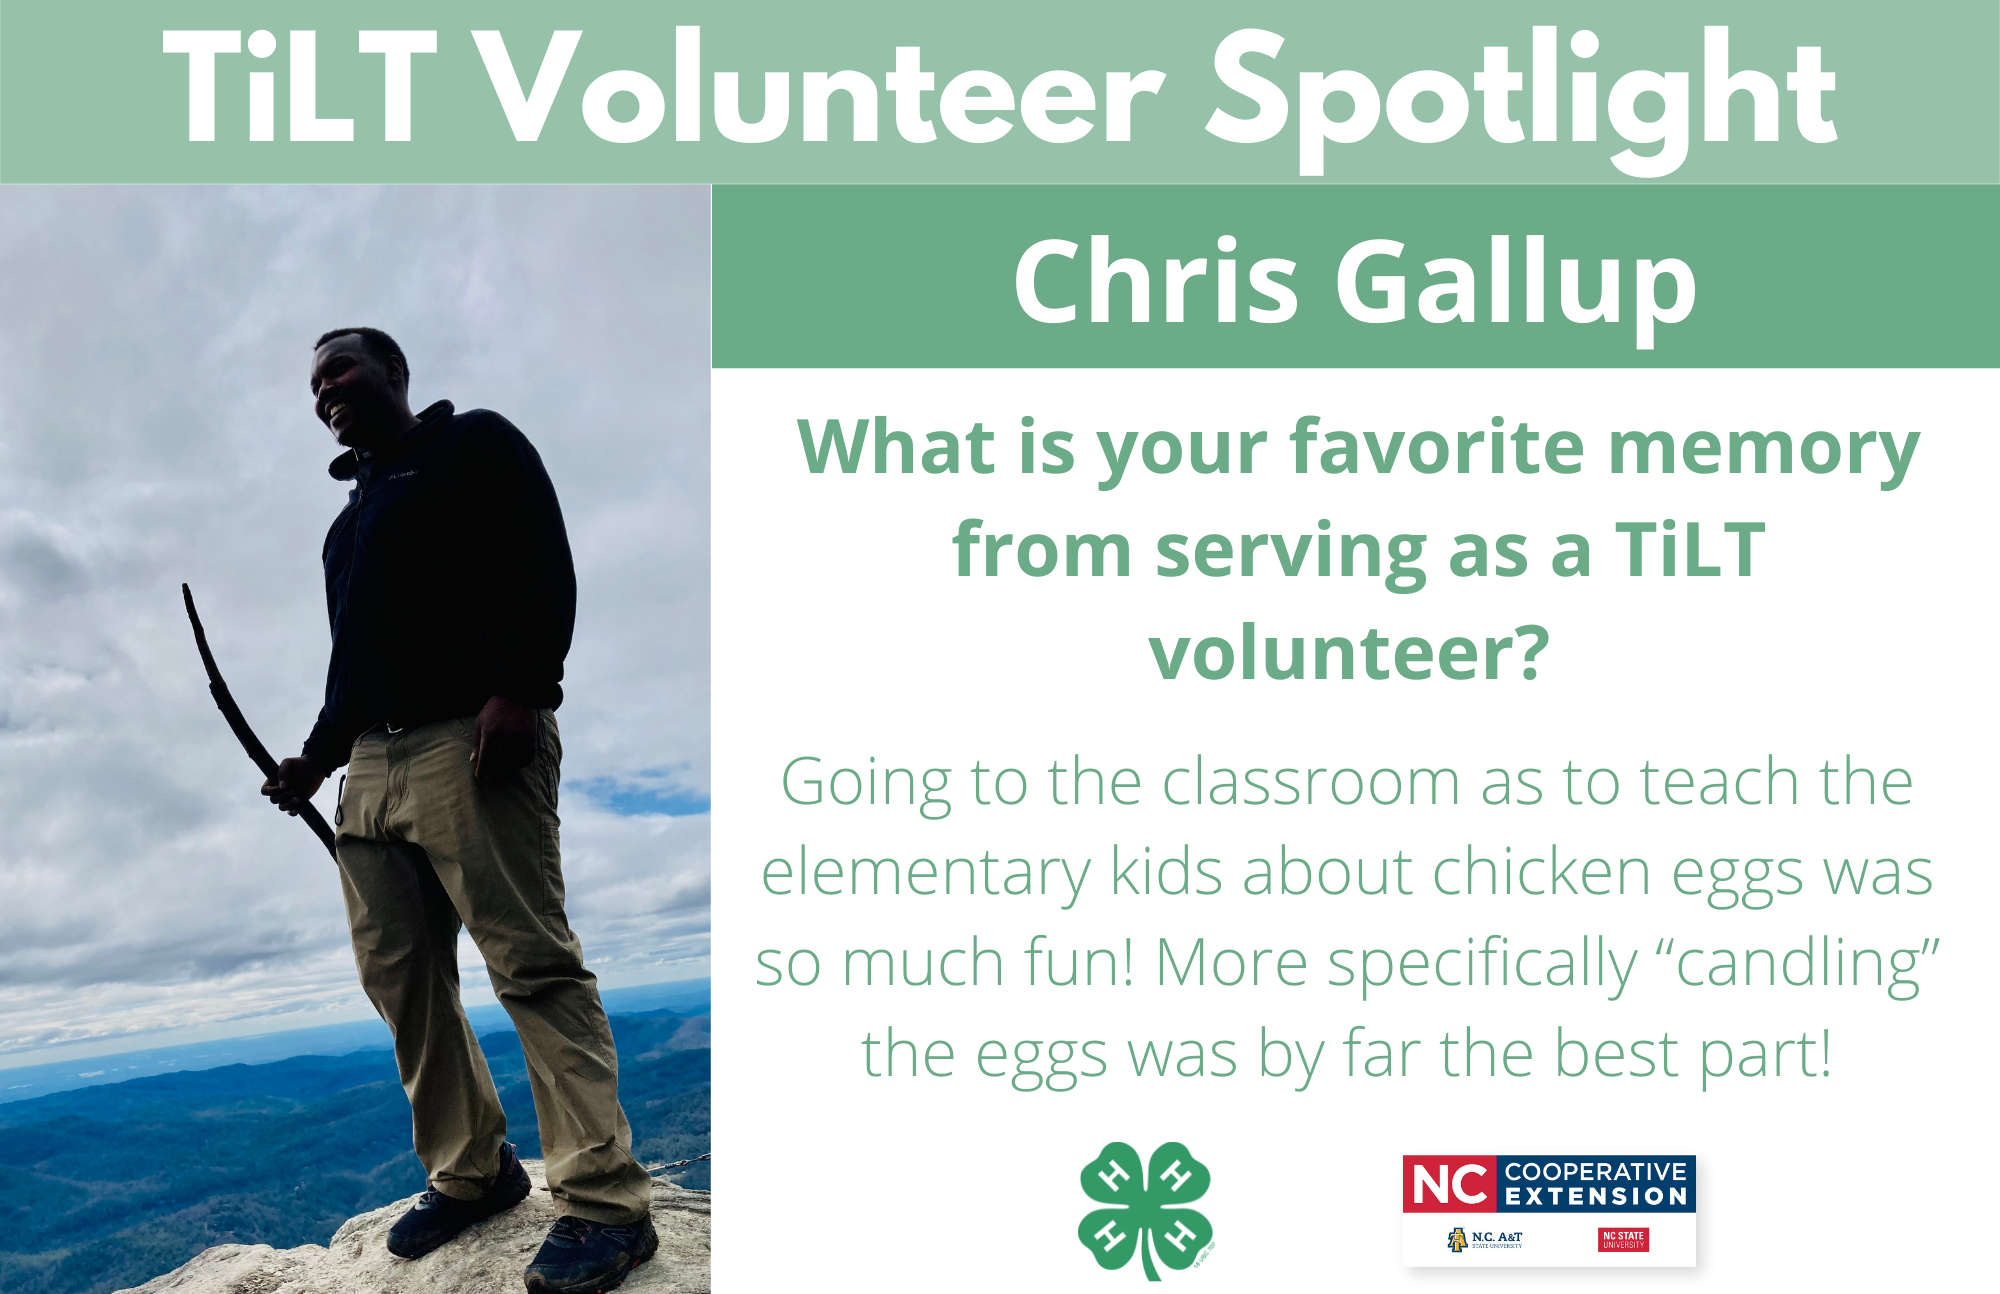 """Headshot of Chris Gallup with following text to the right of image. TiLT Volunteer Spotlight. Chris Gallup. What is your favorite memory from serving as a TiLT volunteer? Going to the classroom as to teach the elementary kids about chicken eggs was so much fun! More specifically """"candling"""" the eggs was by far the best part!"""